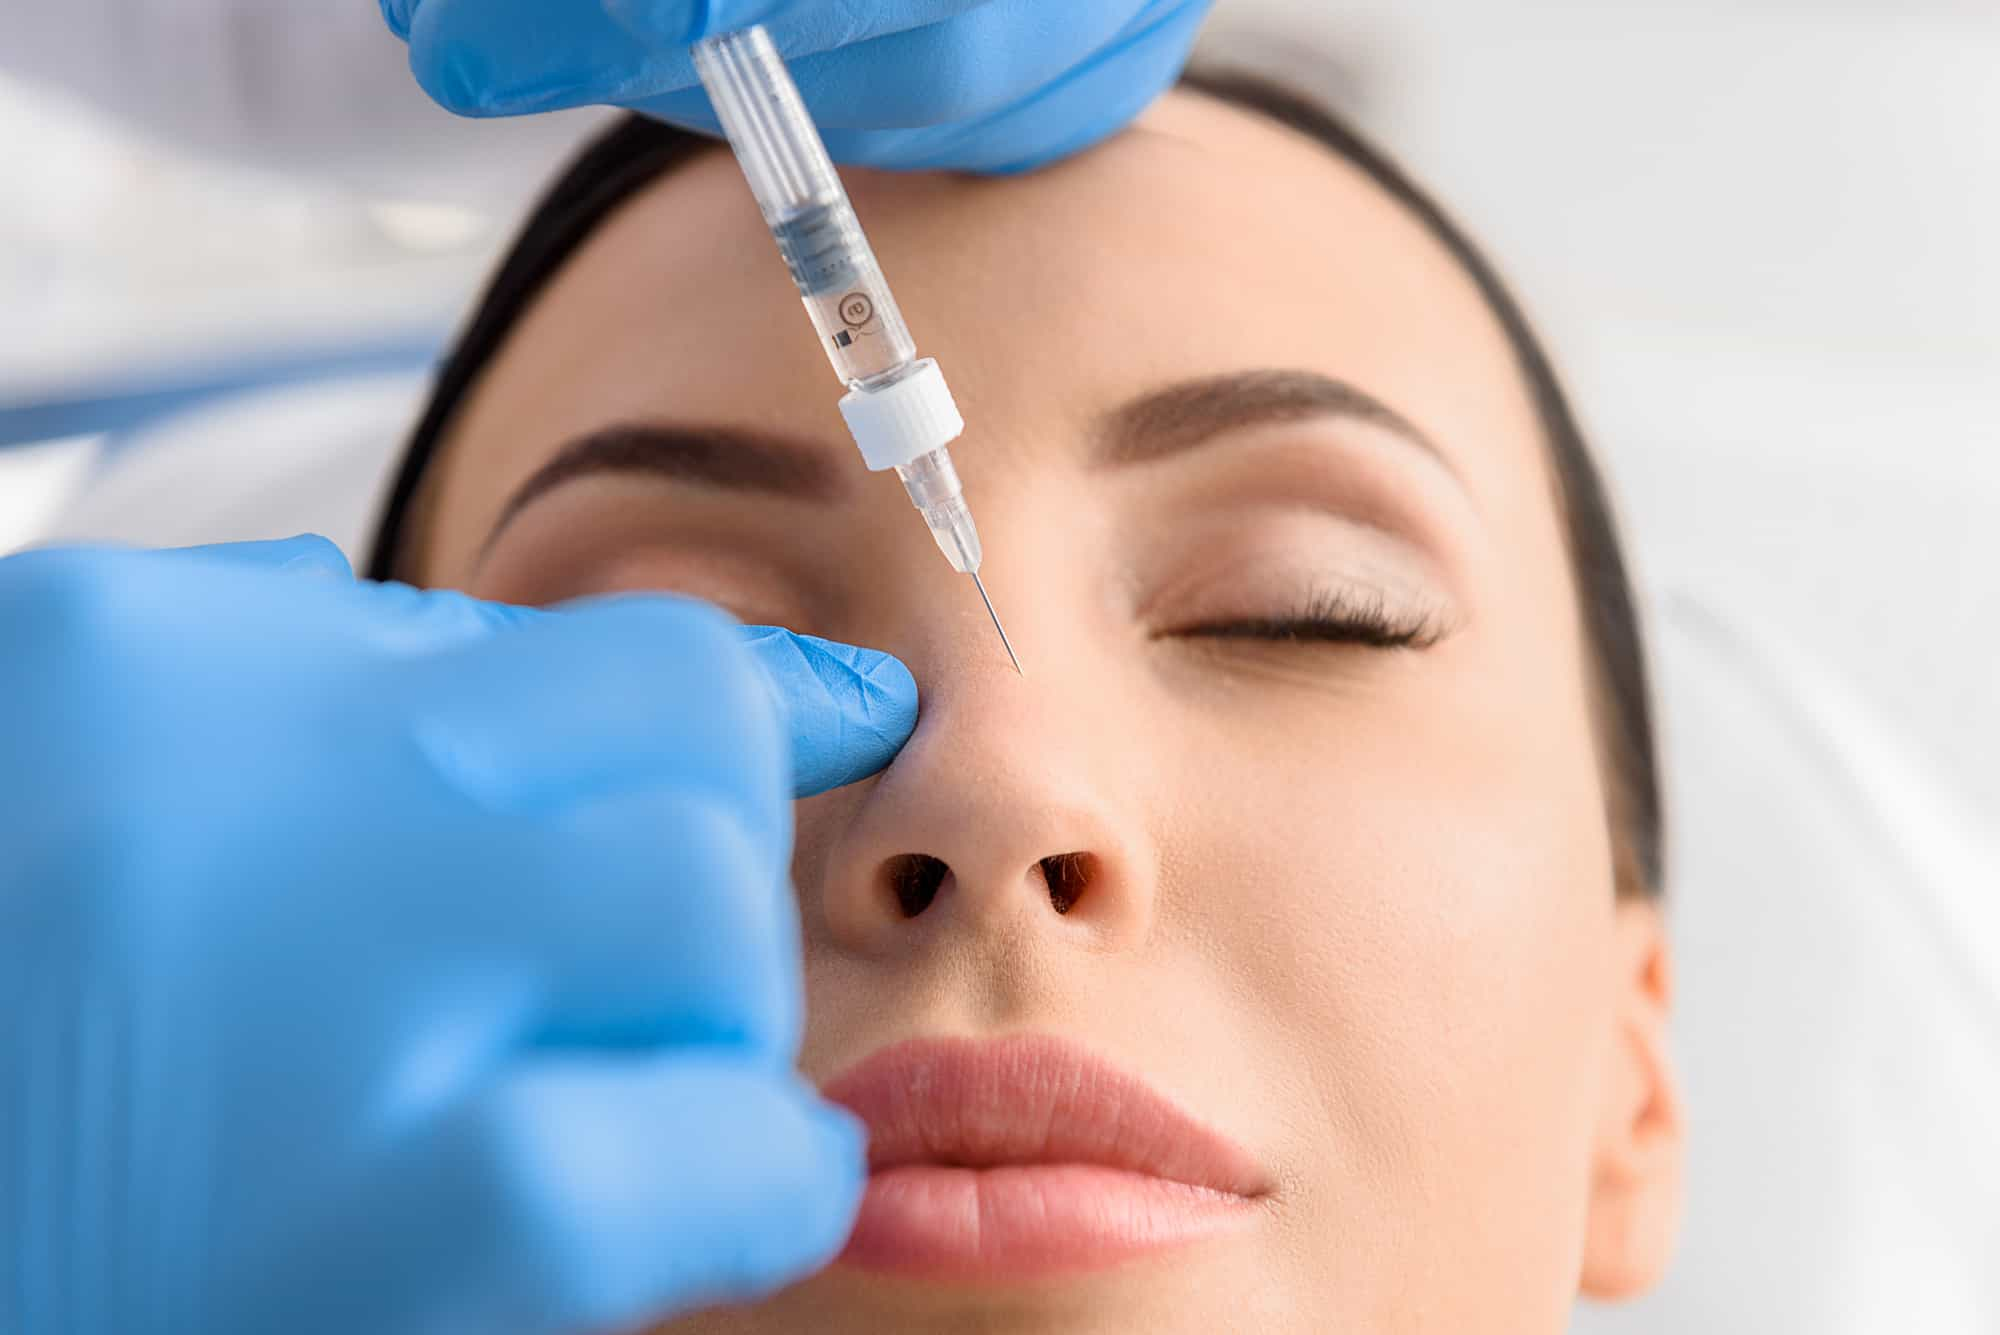 How Does Non-Surgical Nose Job Work Exactly?